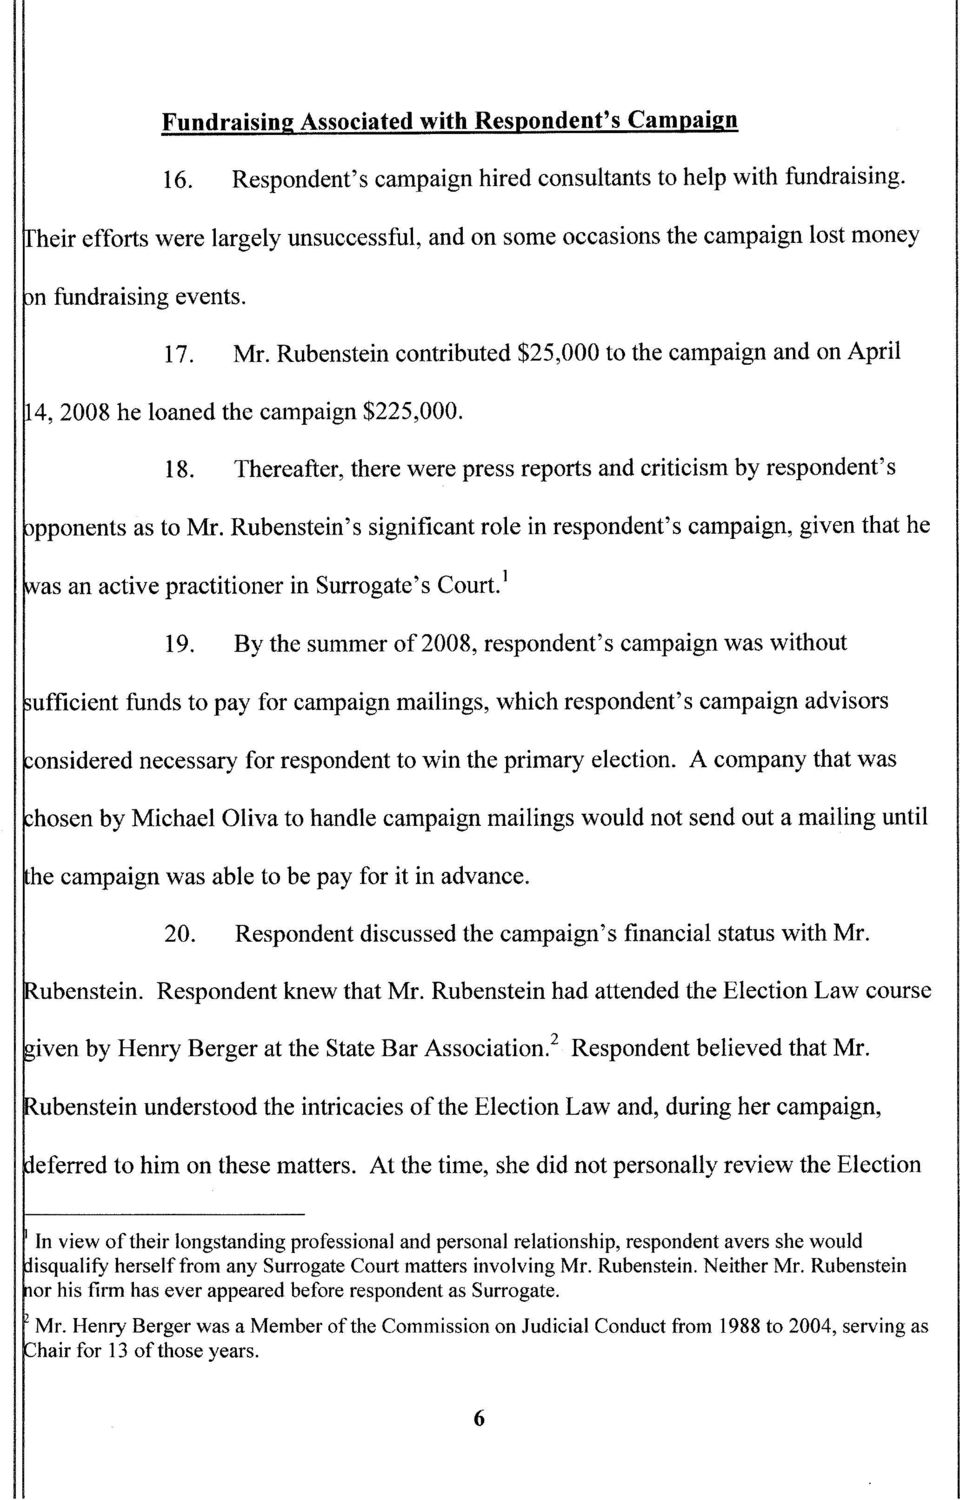 Rubenstein contributed $25,000 to the campaign and on April 14,2008 he loaned the campaign $225,000. 18. Thereafter, there were press reports and criticism by respondent's pponents as to Mr.